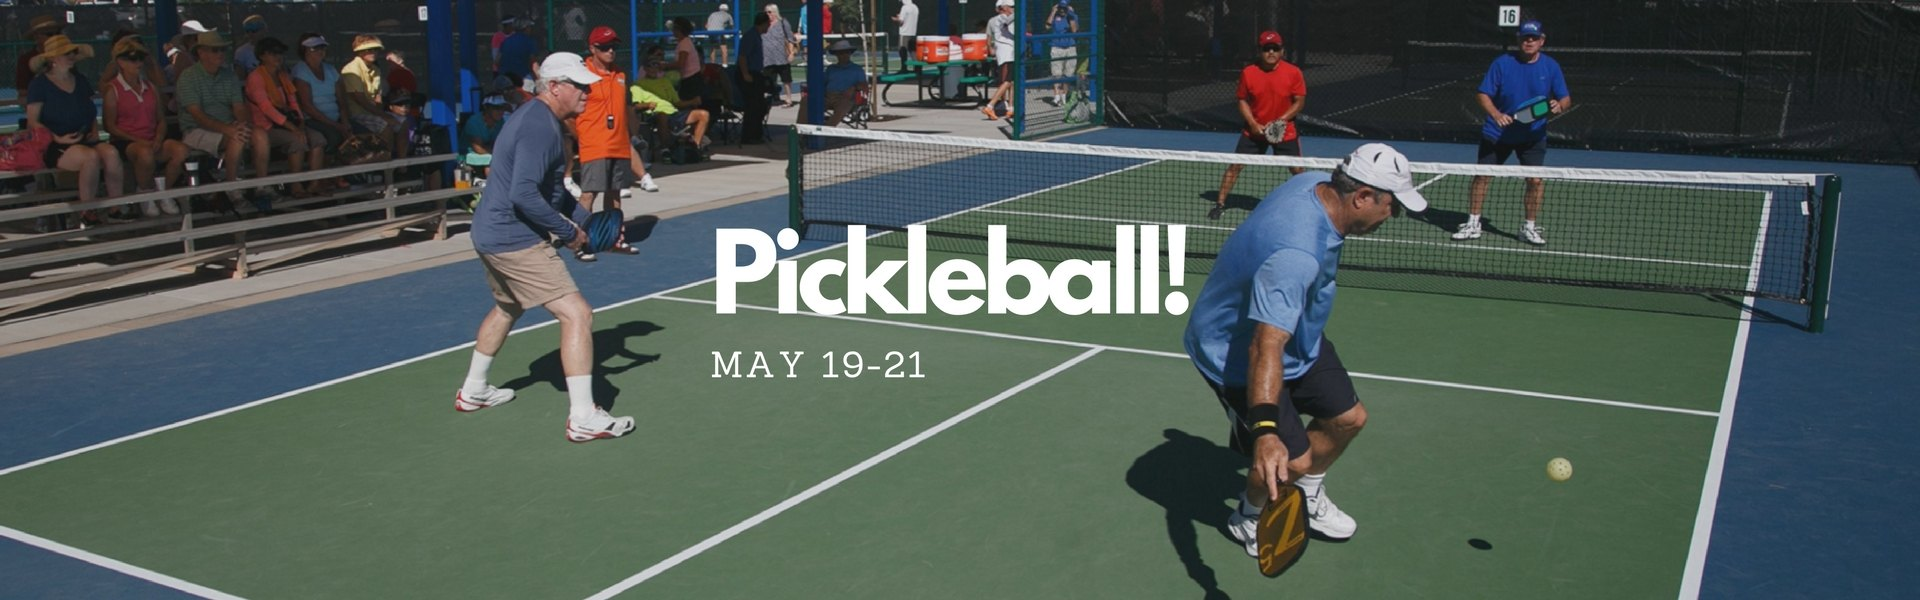 men playing pickleball